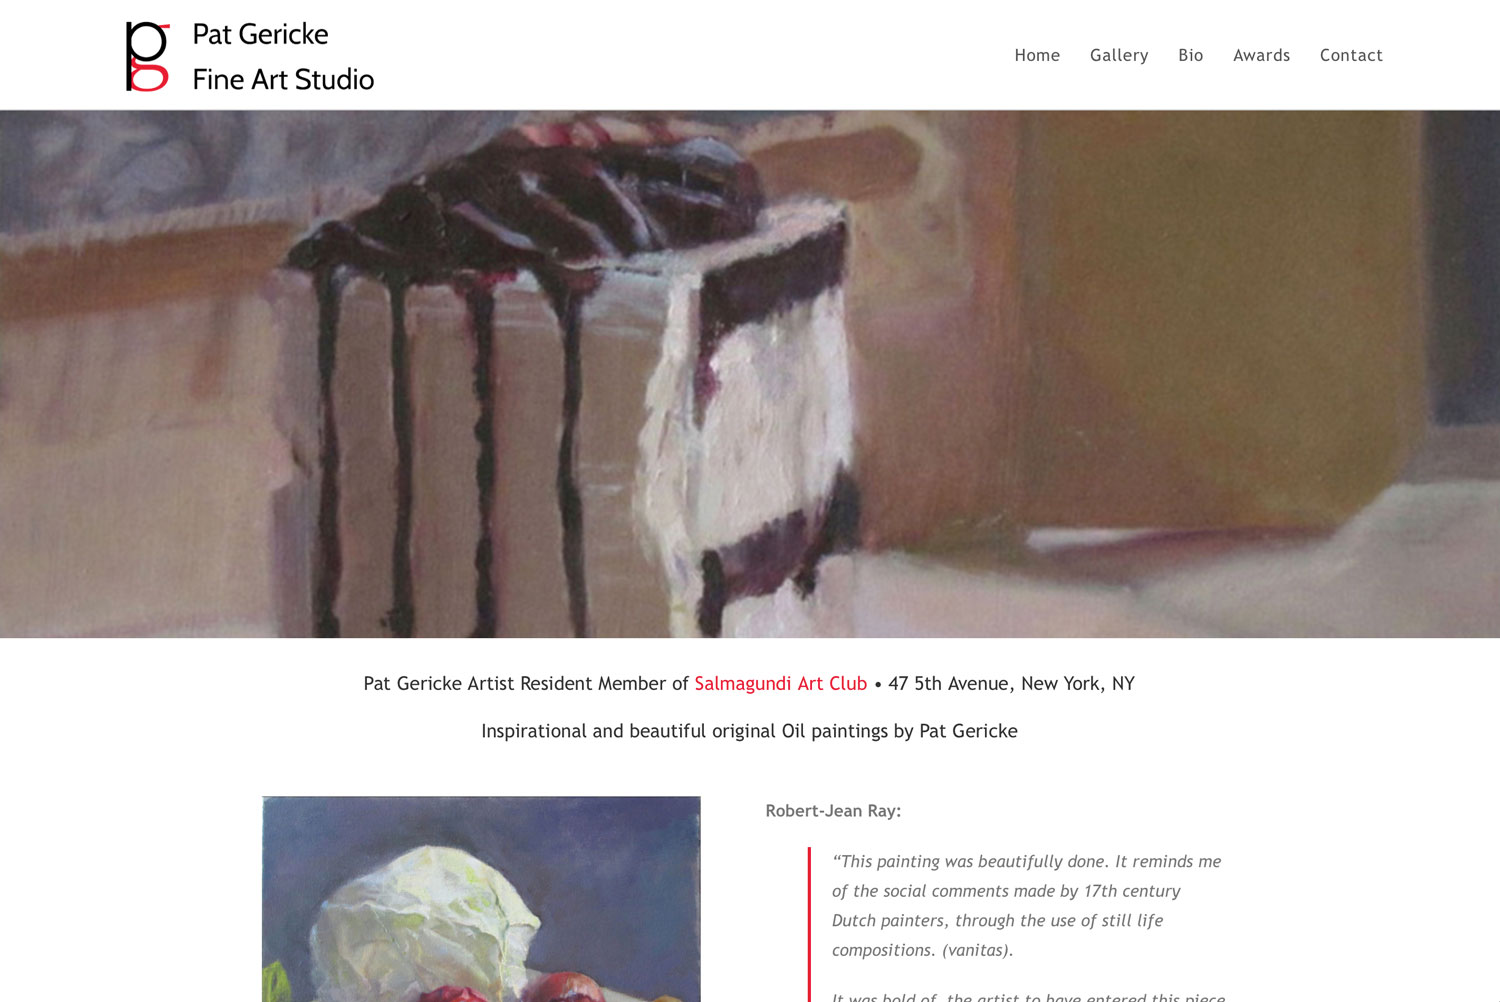 You are currently viewing Pat Gericke Fine Art Studio